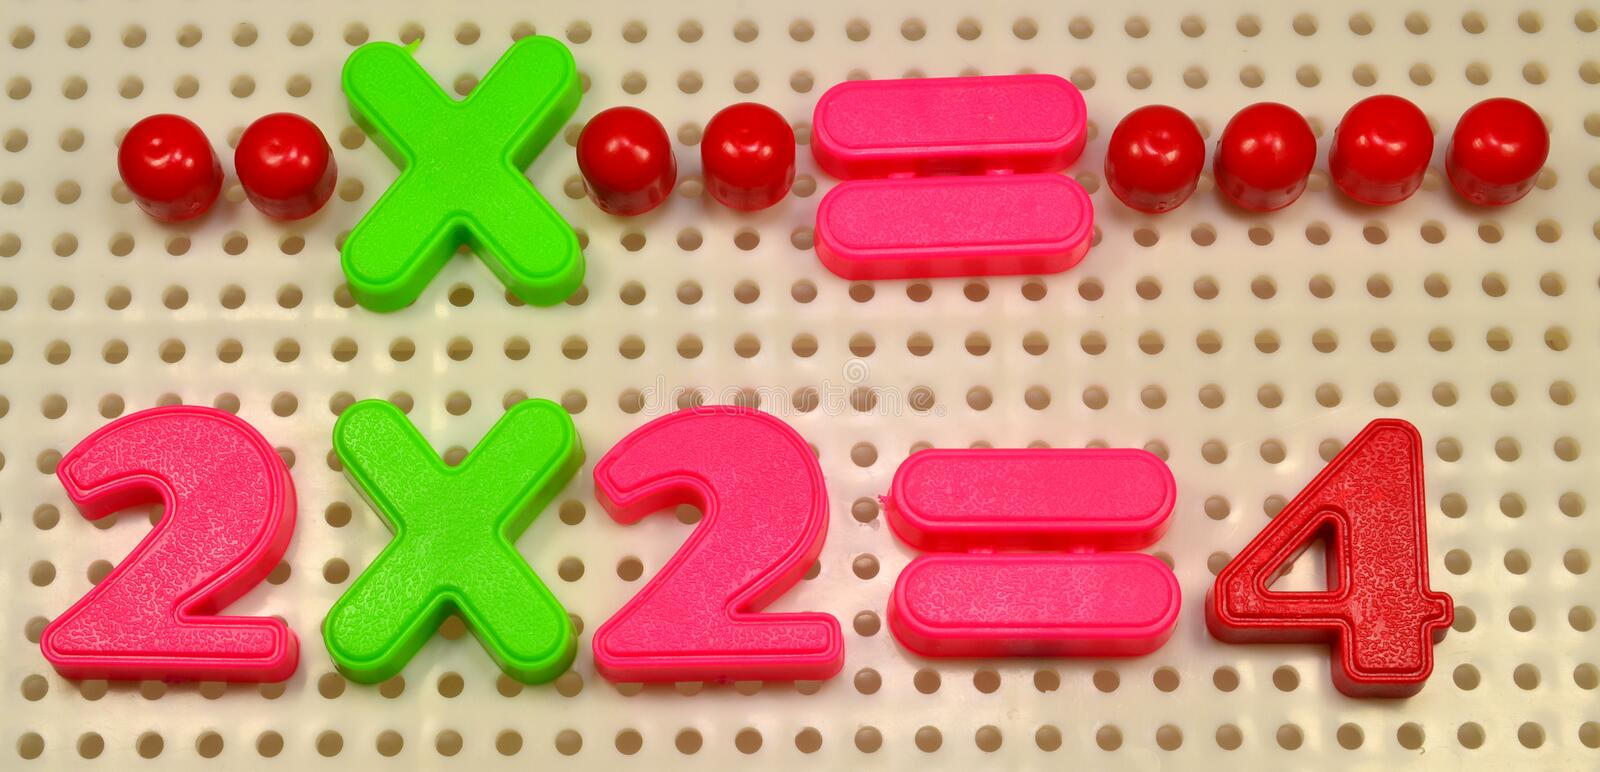 Maths. Sum 2 times 2 equals four. It is another way of explaining it royalty free stock photos